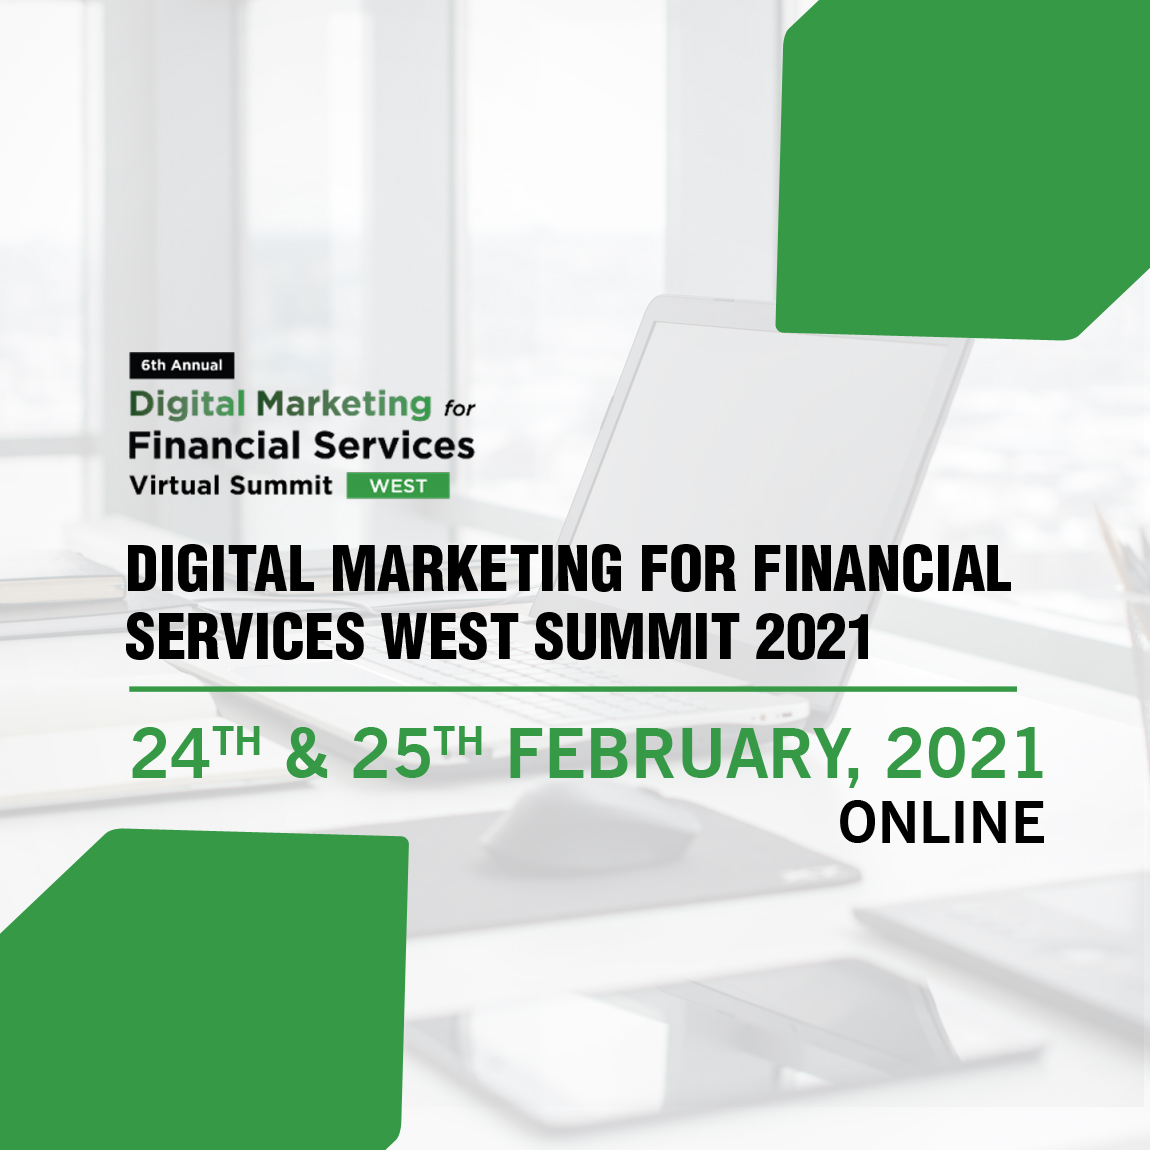 Digital Marketing for Financial Services West Summit